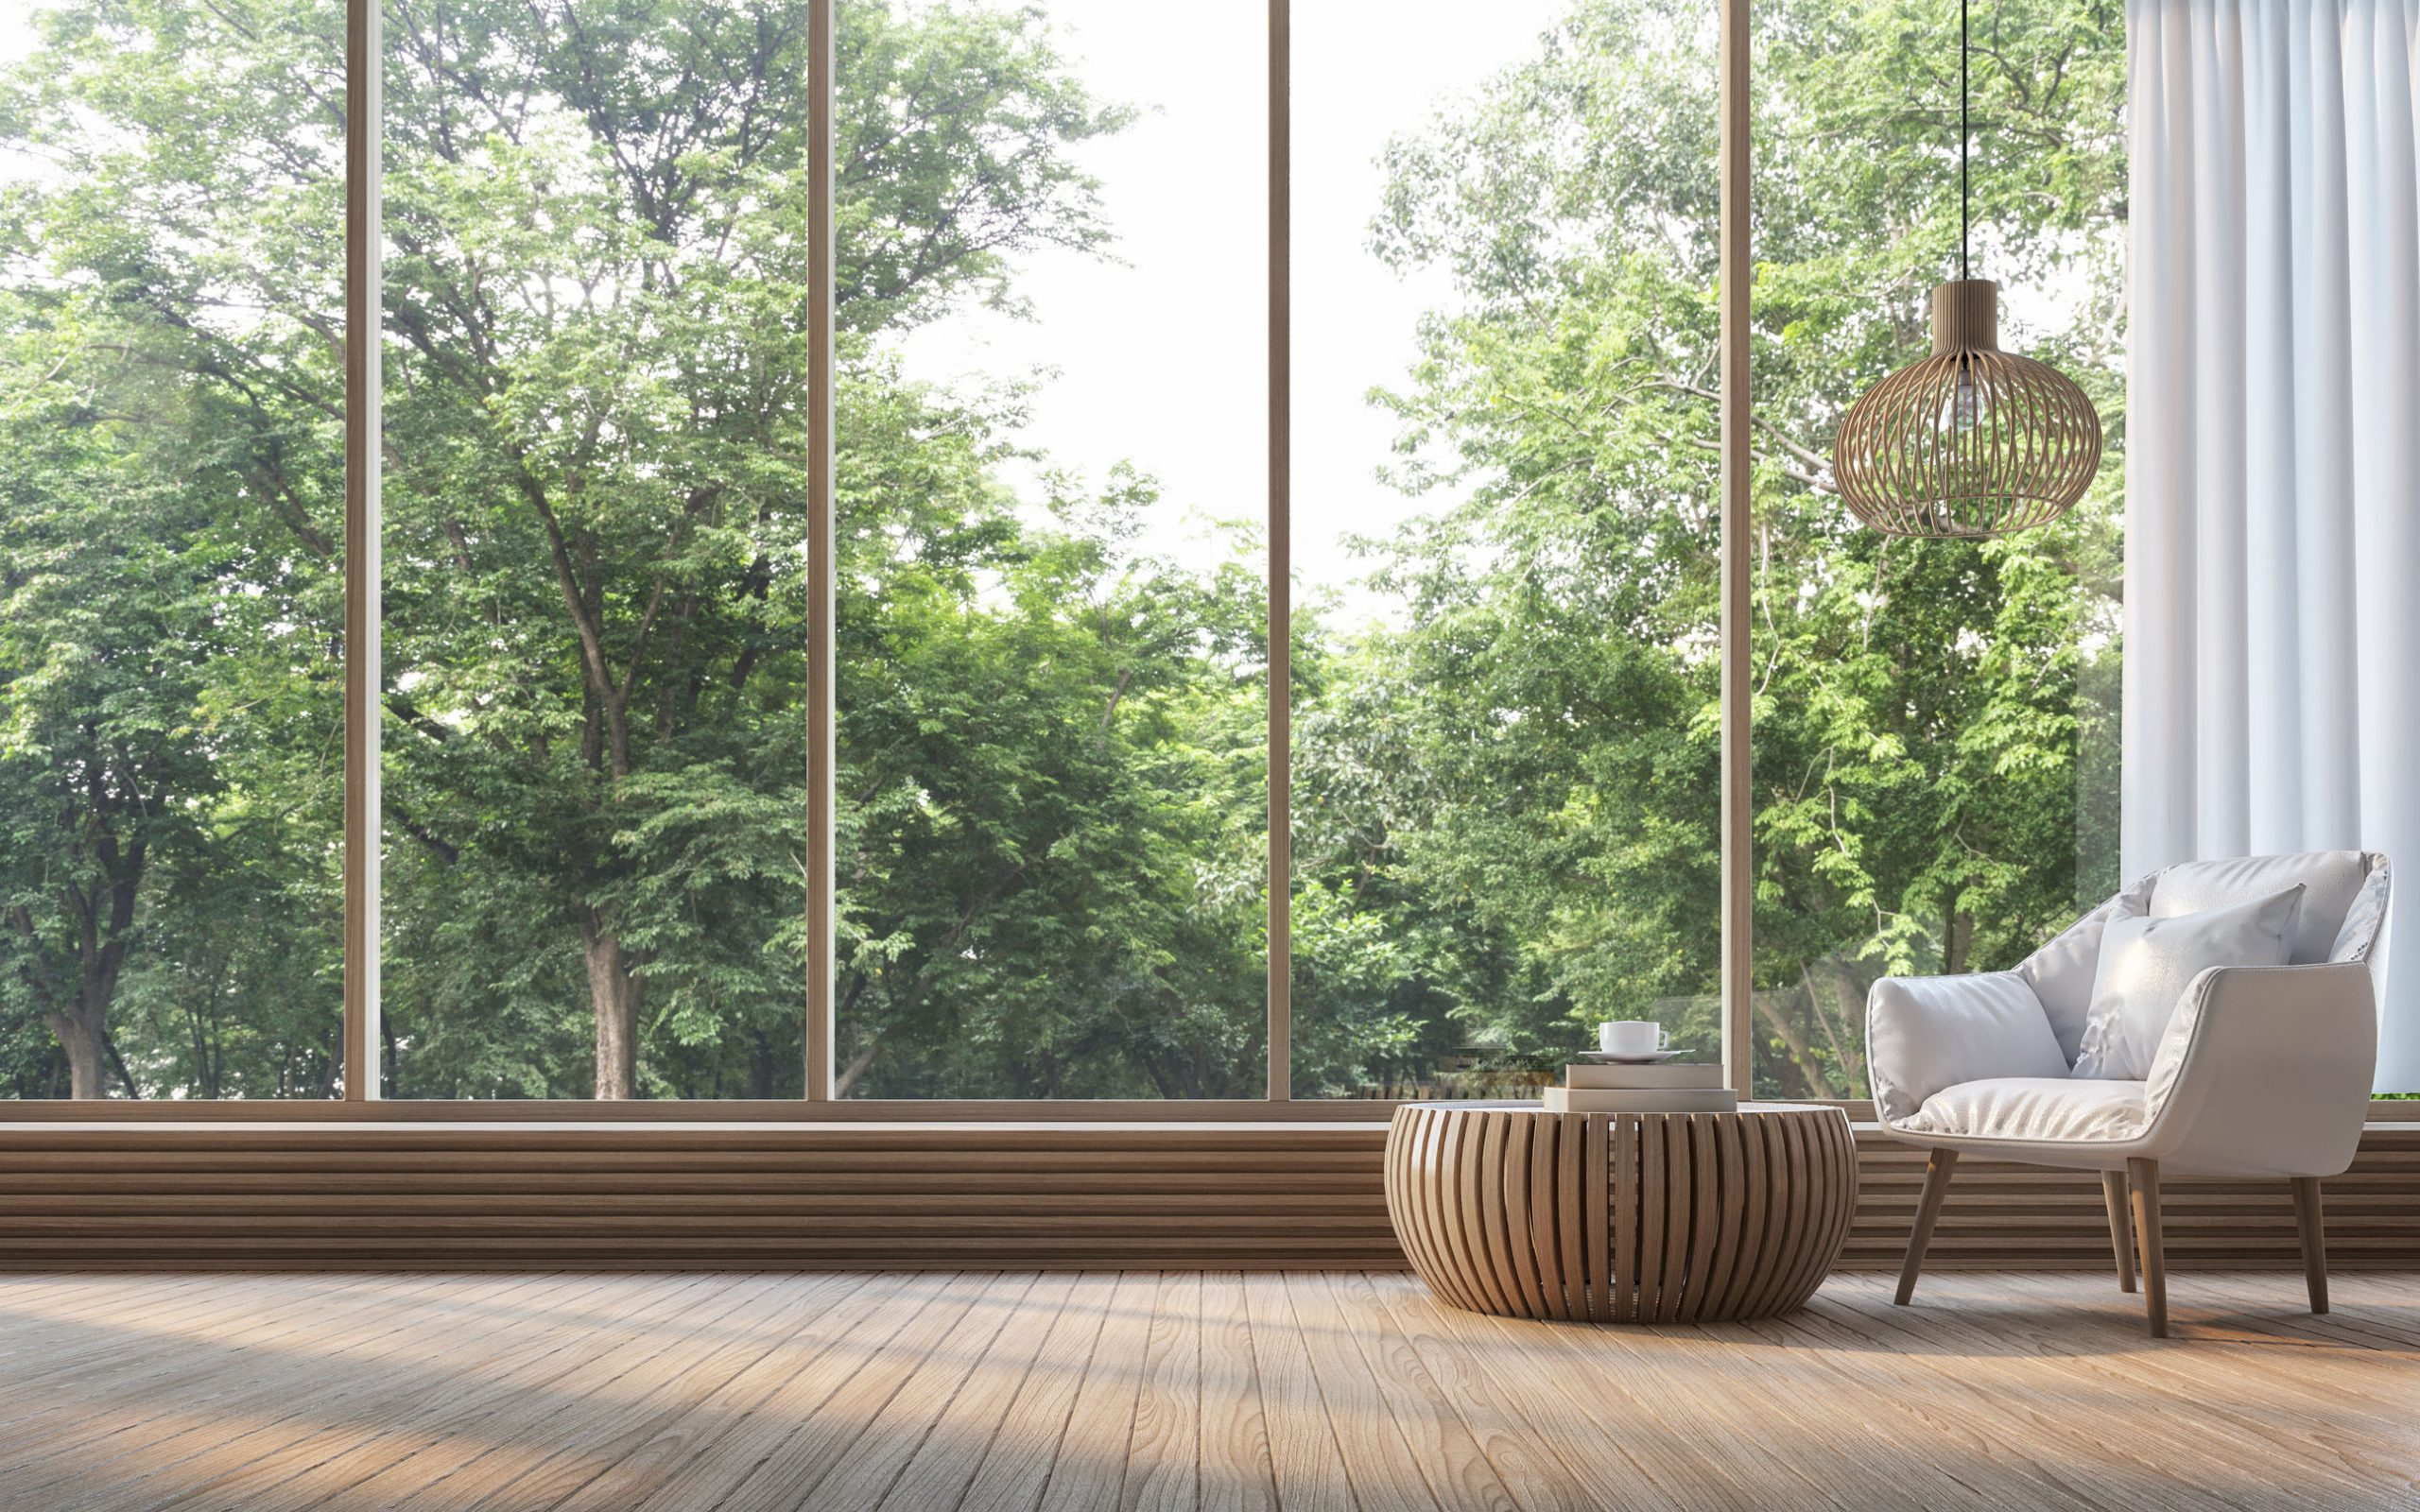 Prevent Sun Glare in Your Home with Window Film